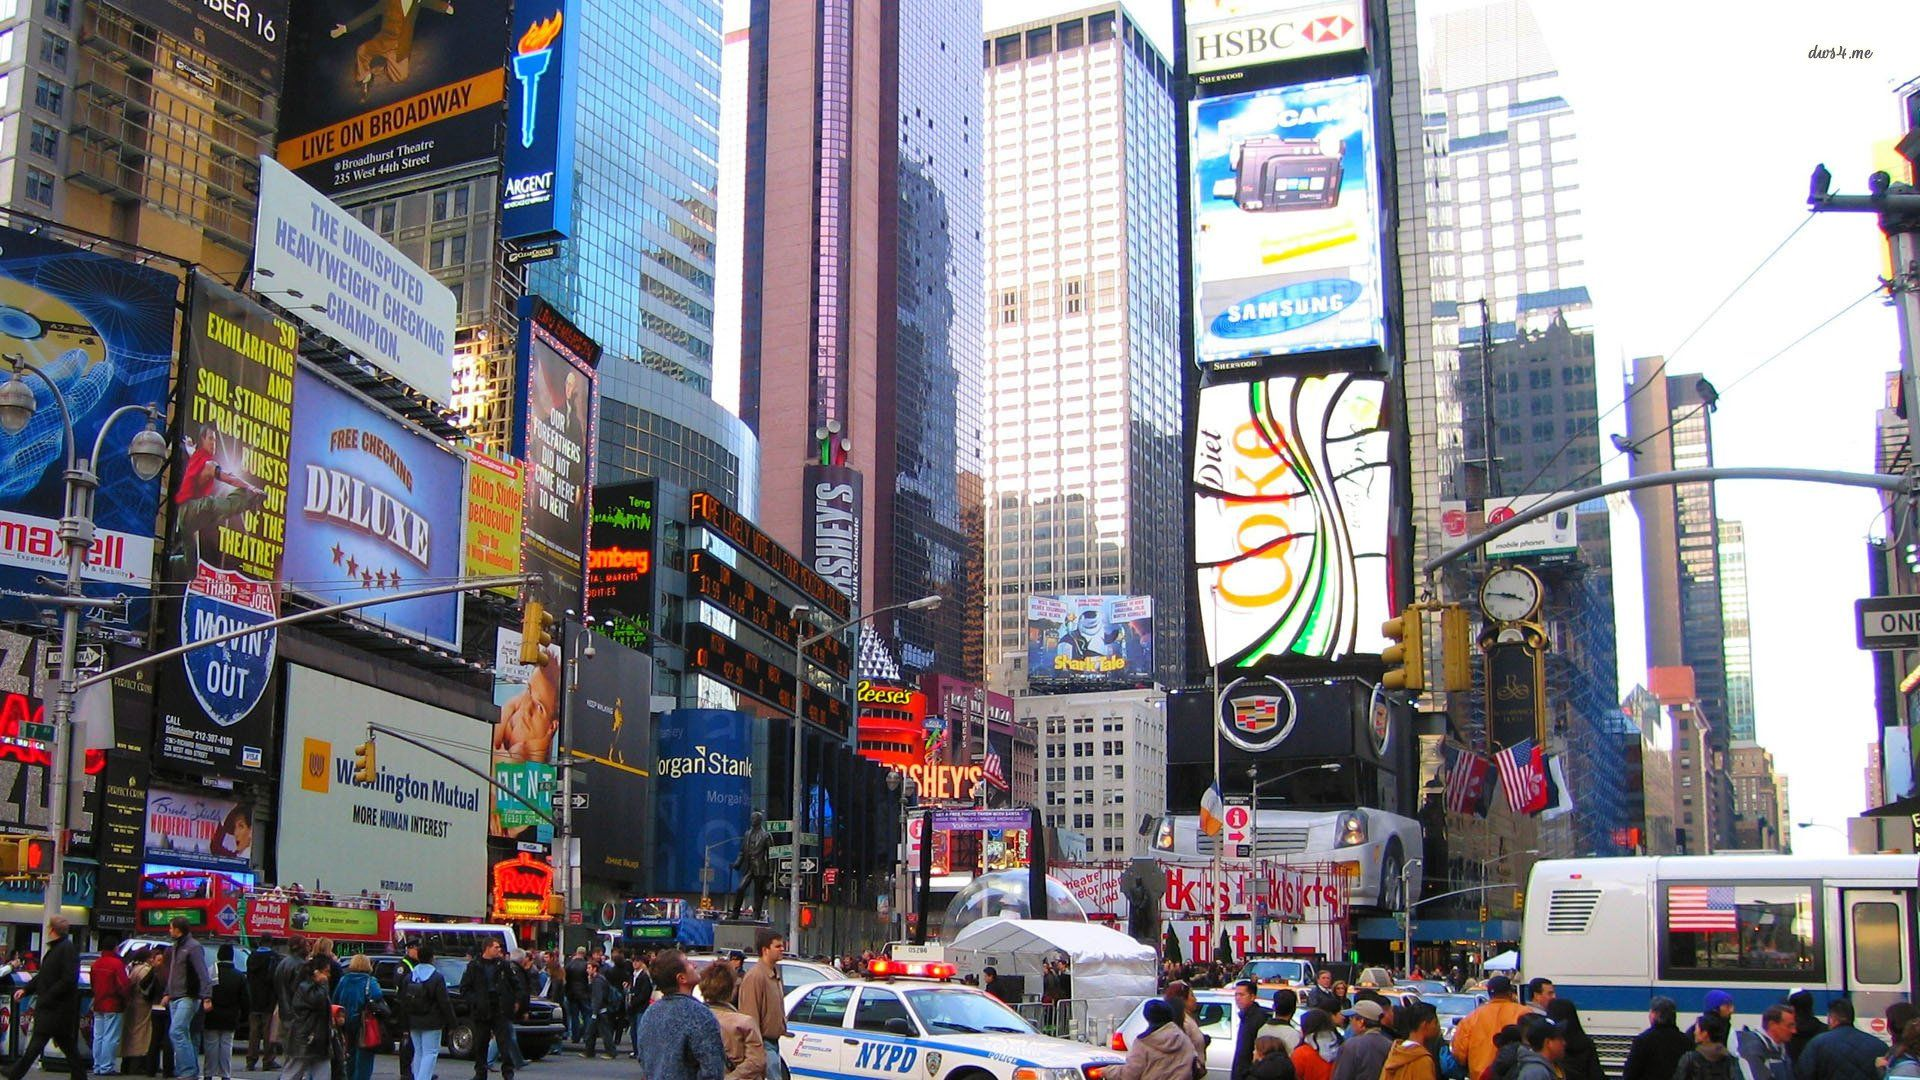 New York City Time Square Hd Wallpaper Times Square New York Times Square New York Wallpaper